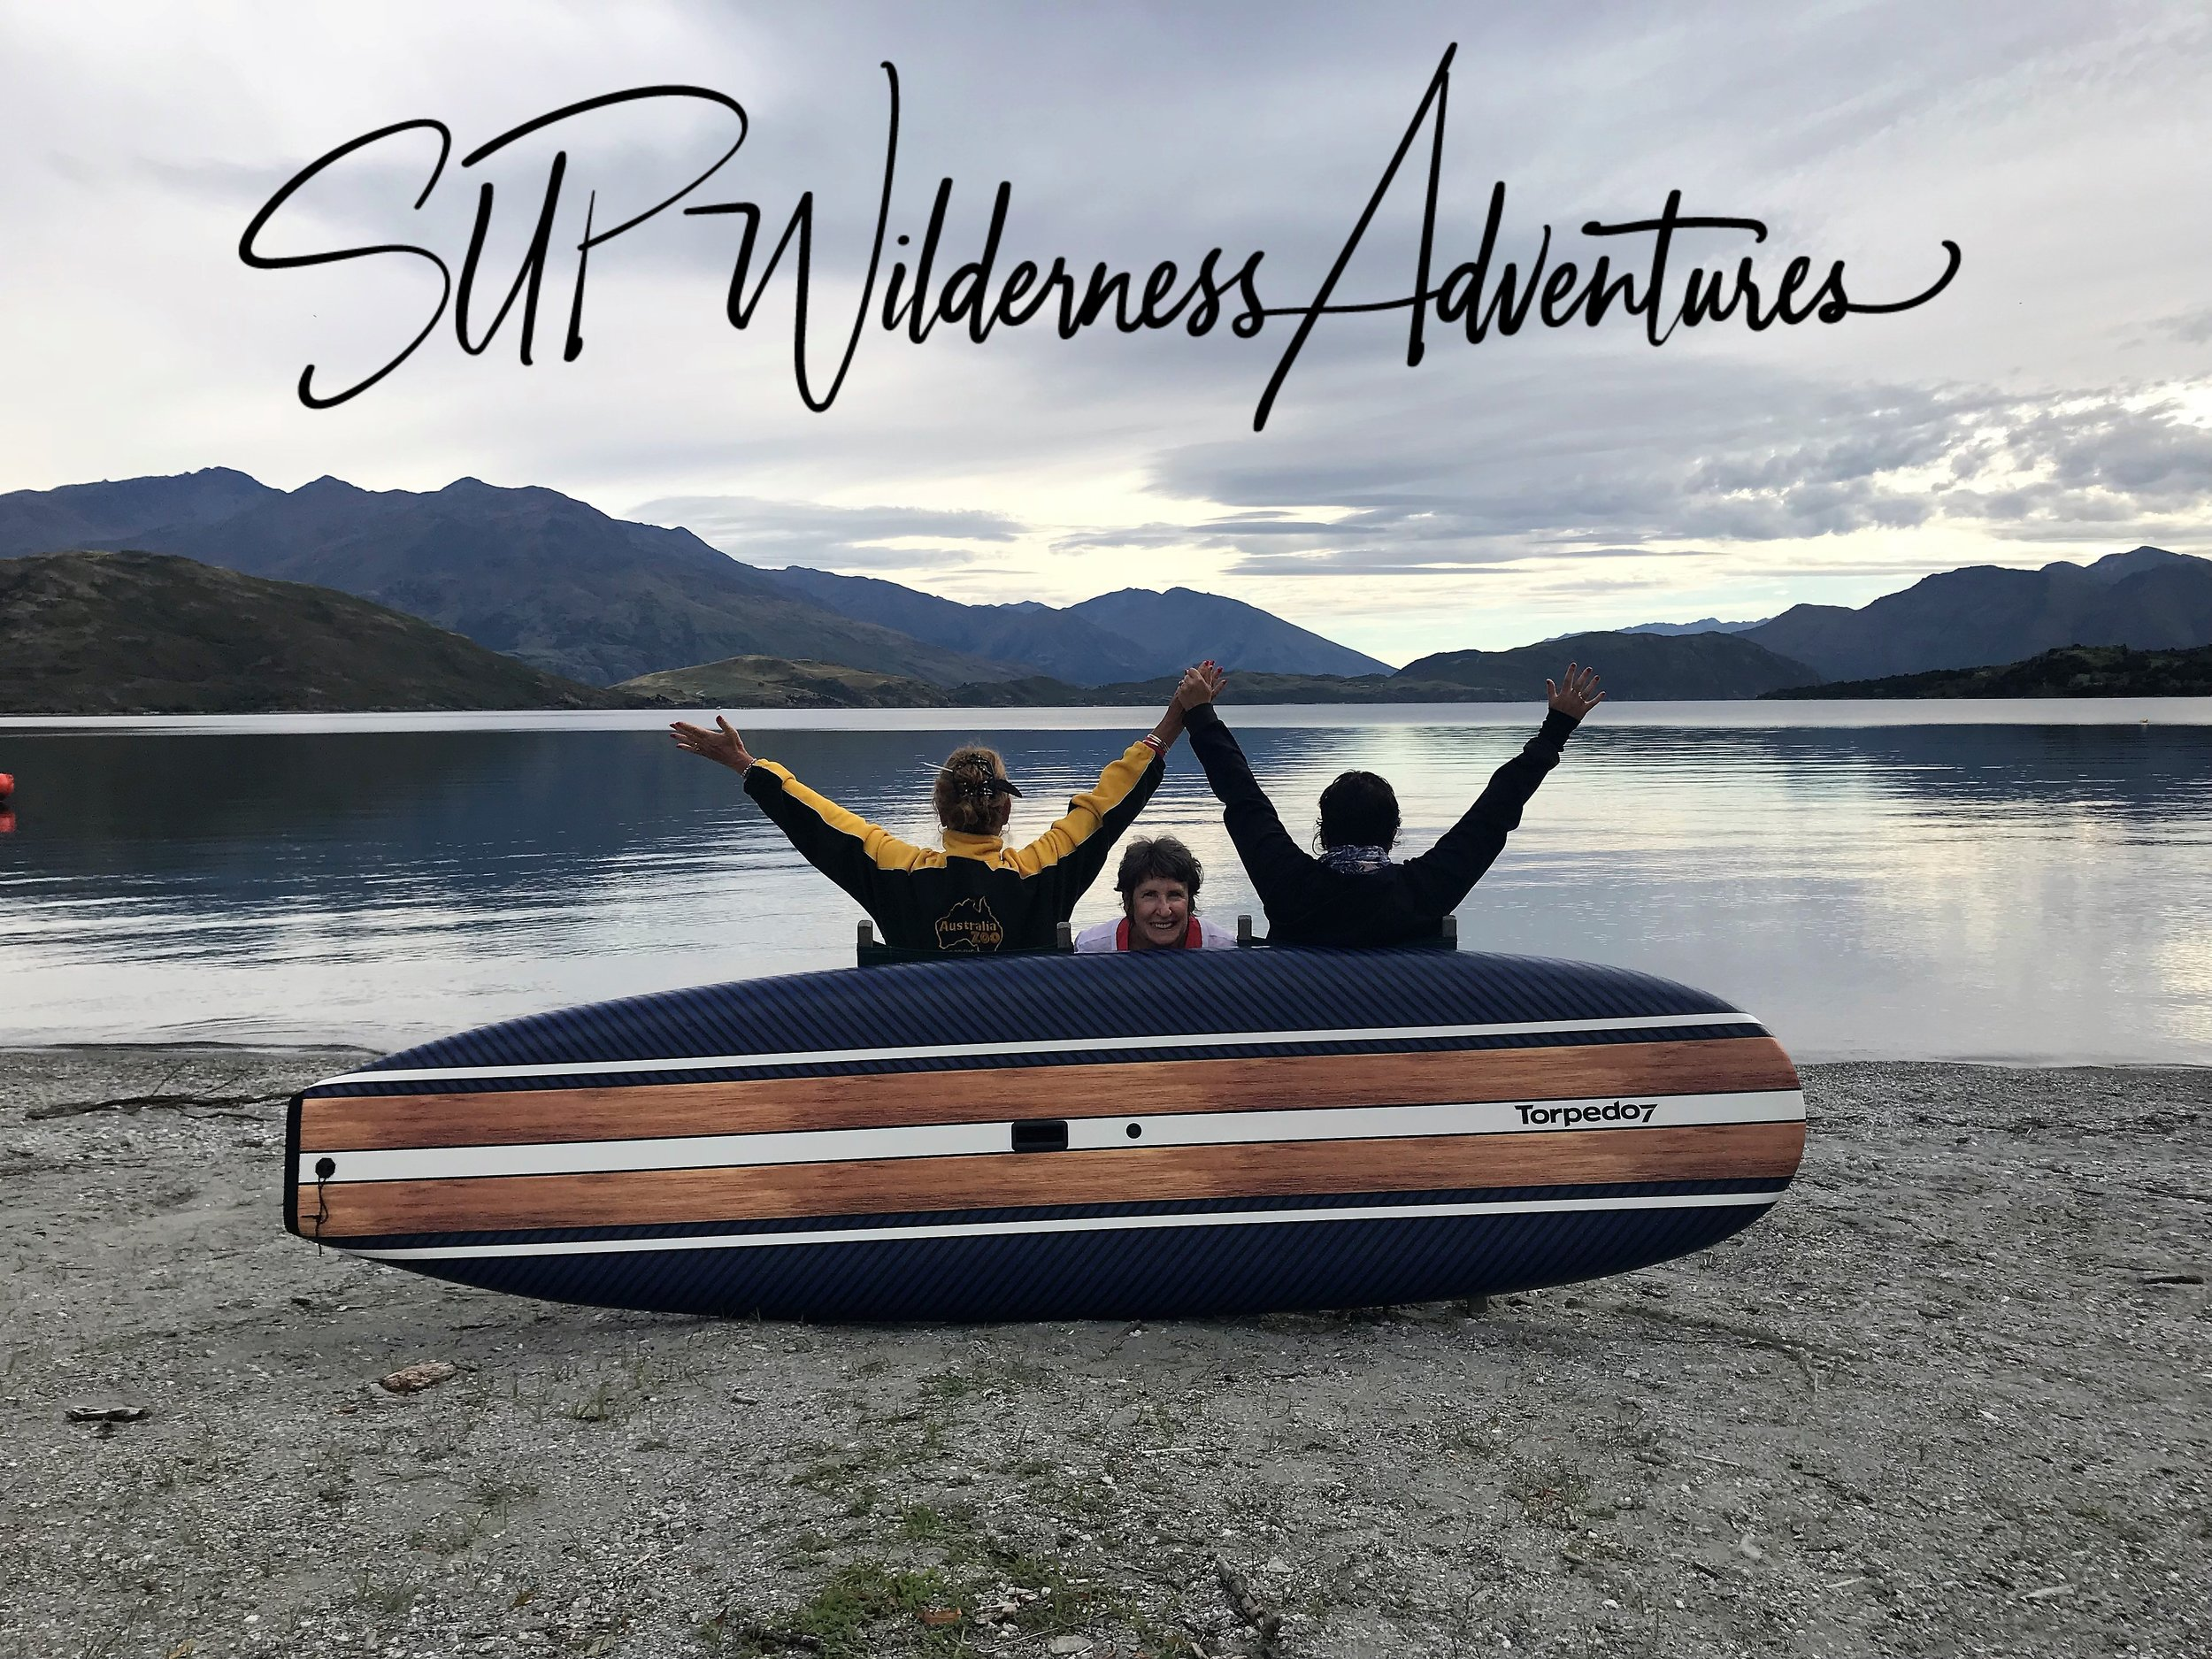 SUP Wilderness Adventures 5 Lake Wanaka 2018.jpg